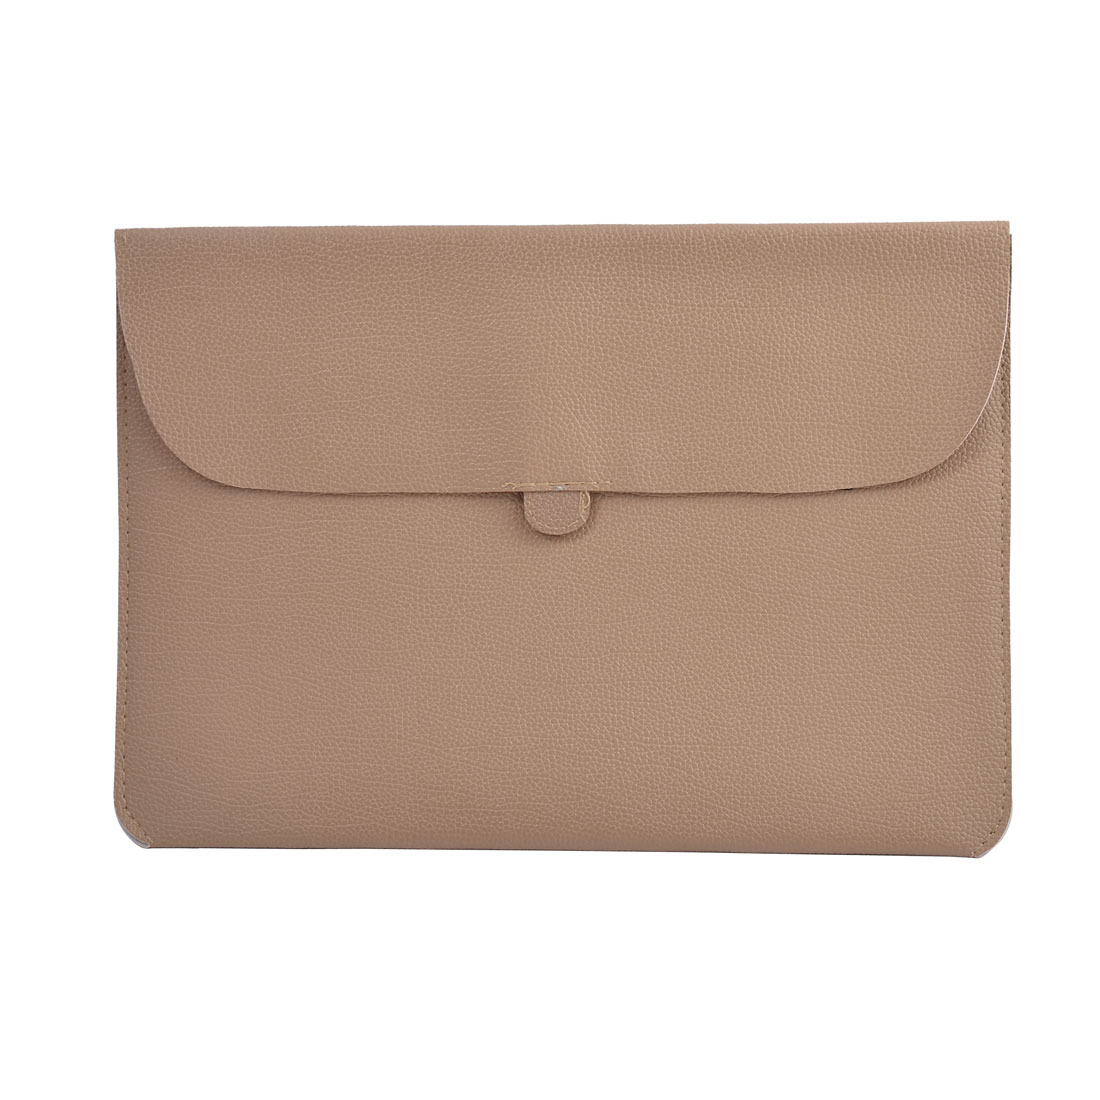 Carrying Laptop Case Pouch Envelope Shape Tablet Sleeve Bag Khaki for Macbook 13.3""